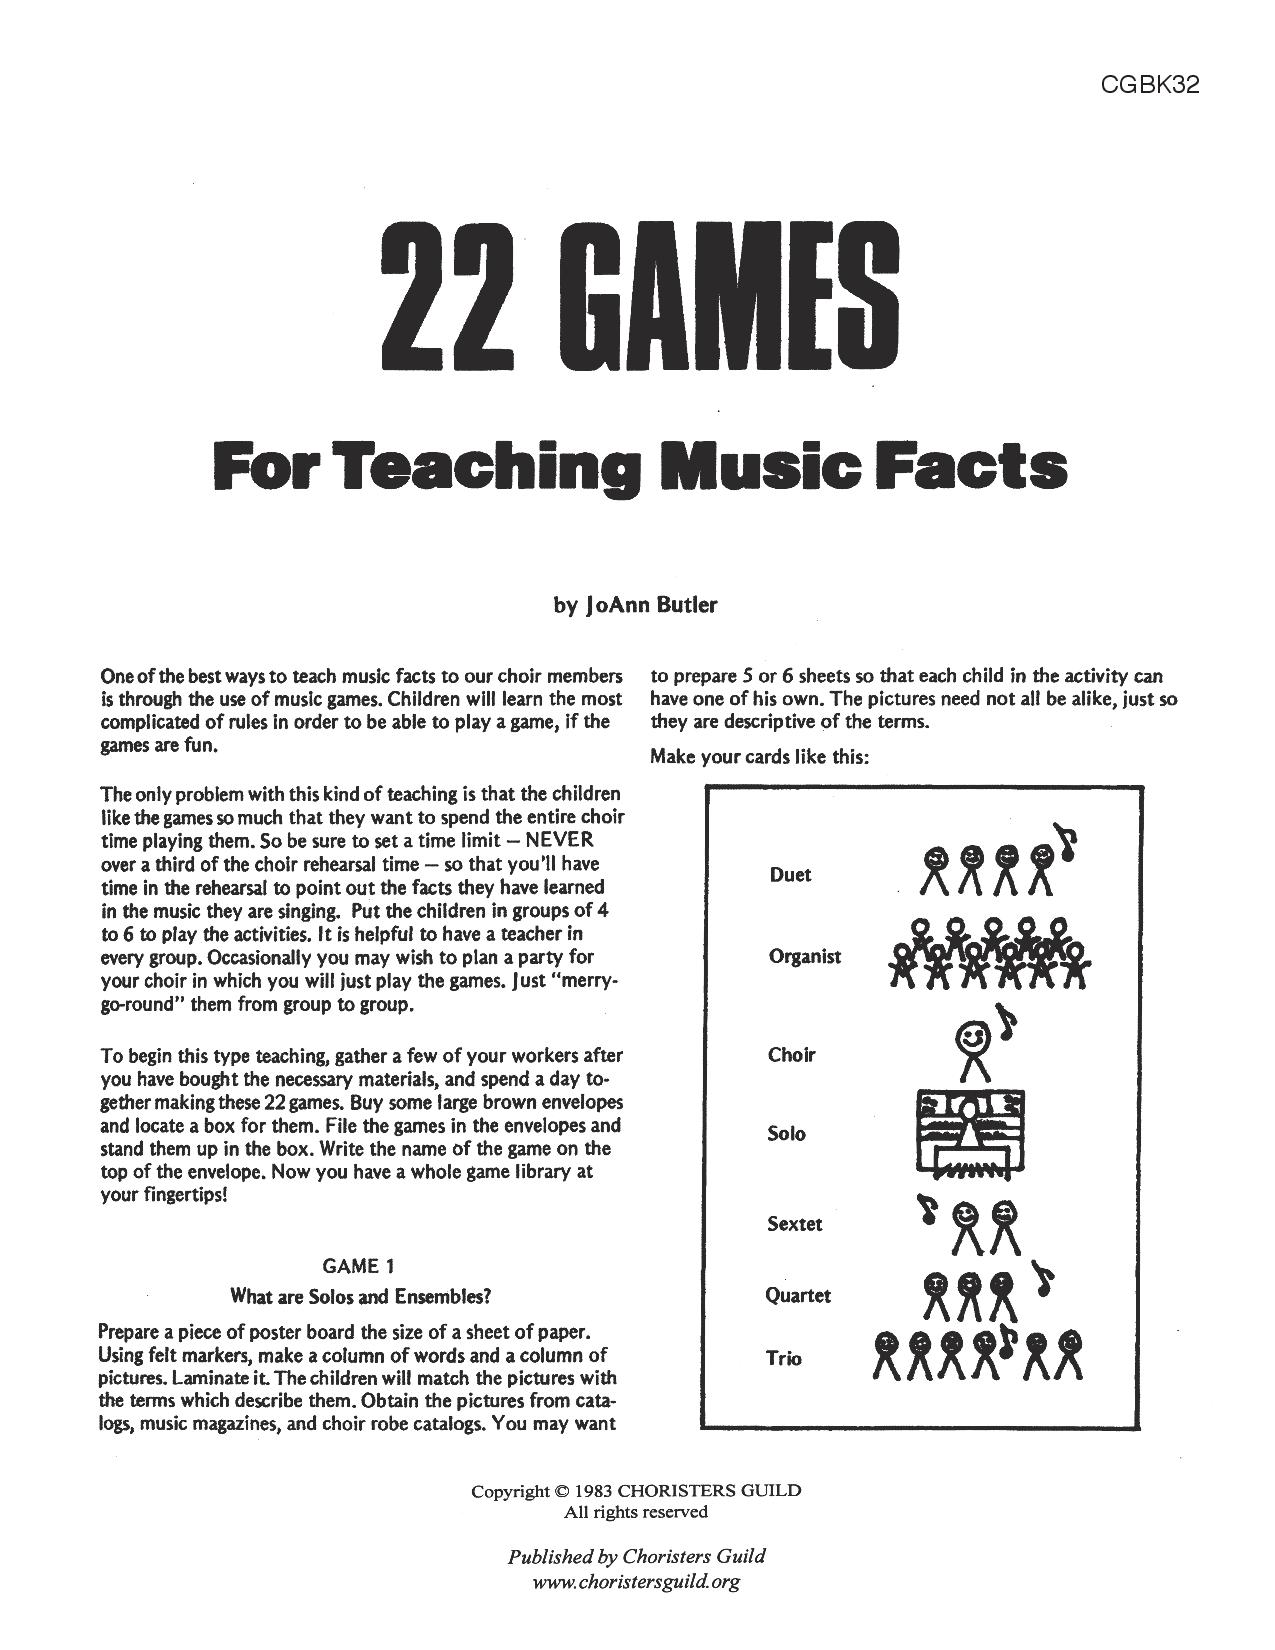 22 Games for Teaching Music Facts Book